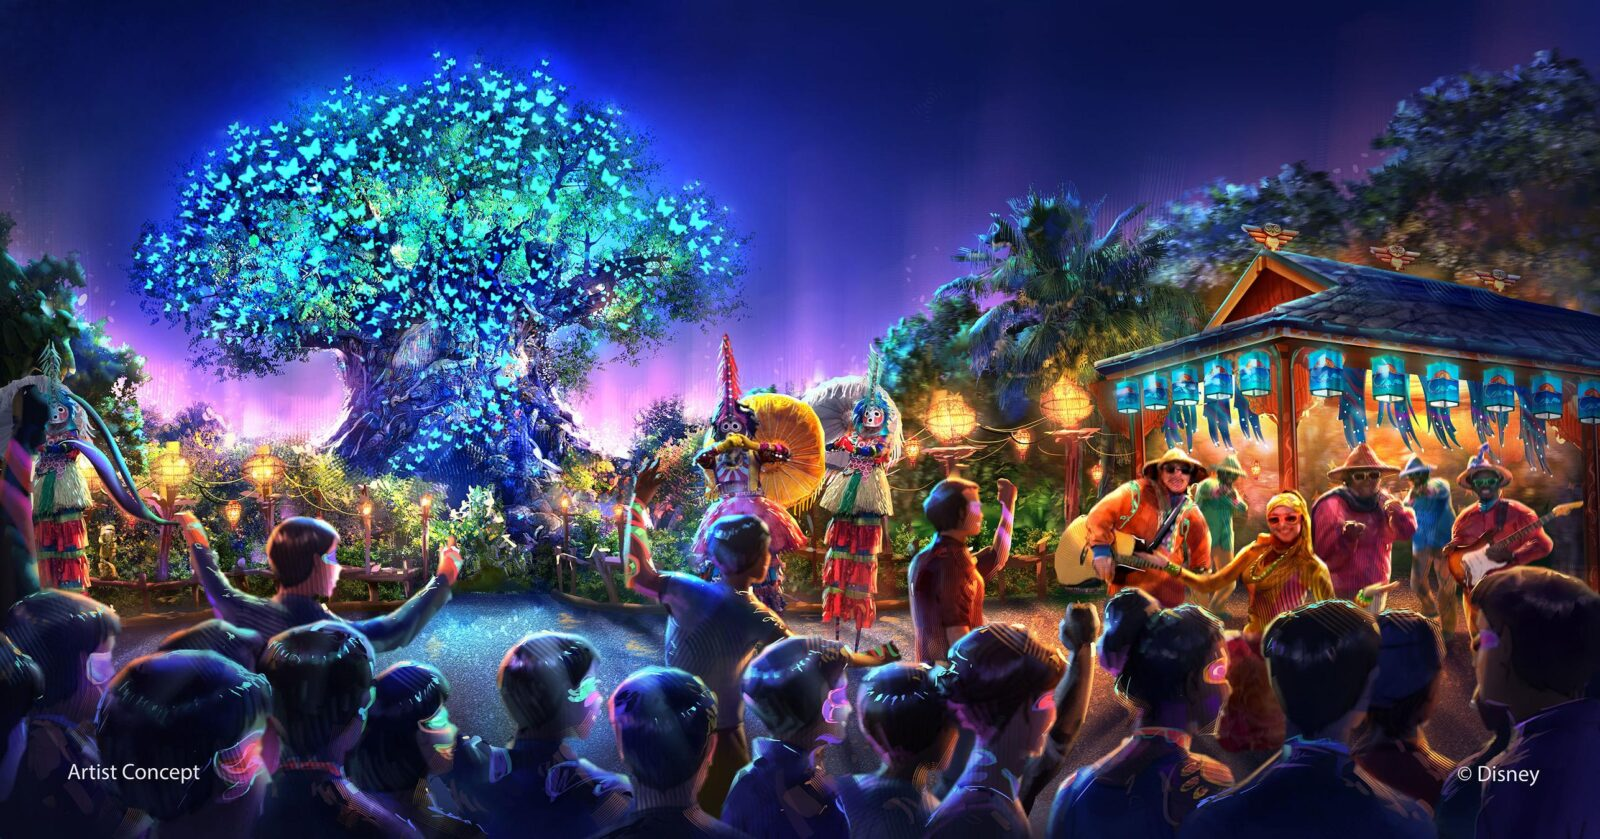 new nighttime show coming to disney u0026 39 s animal kingdom  new avatar concept art released